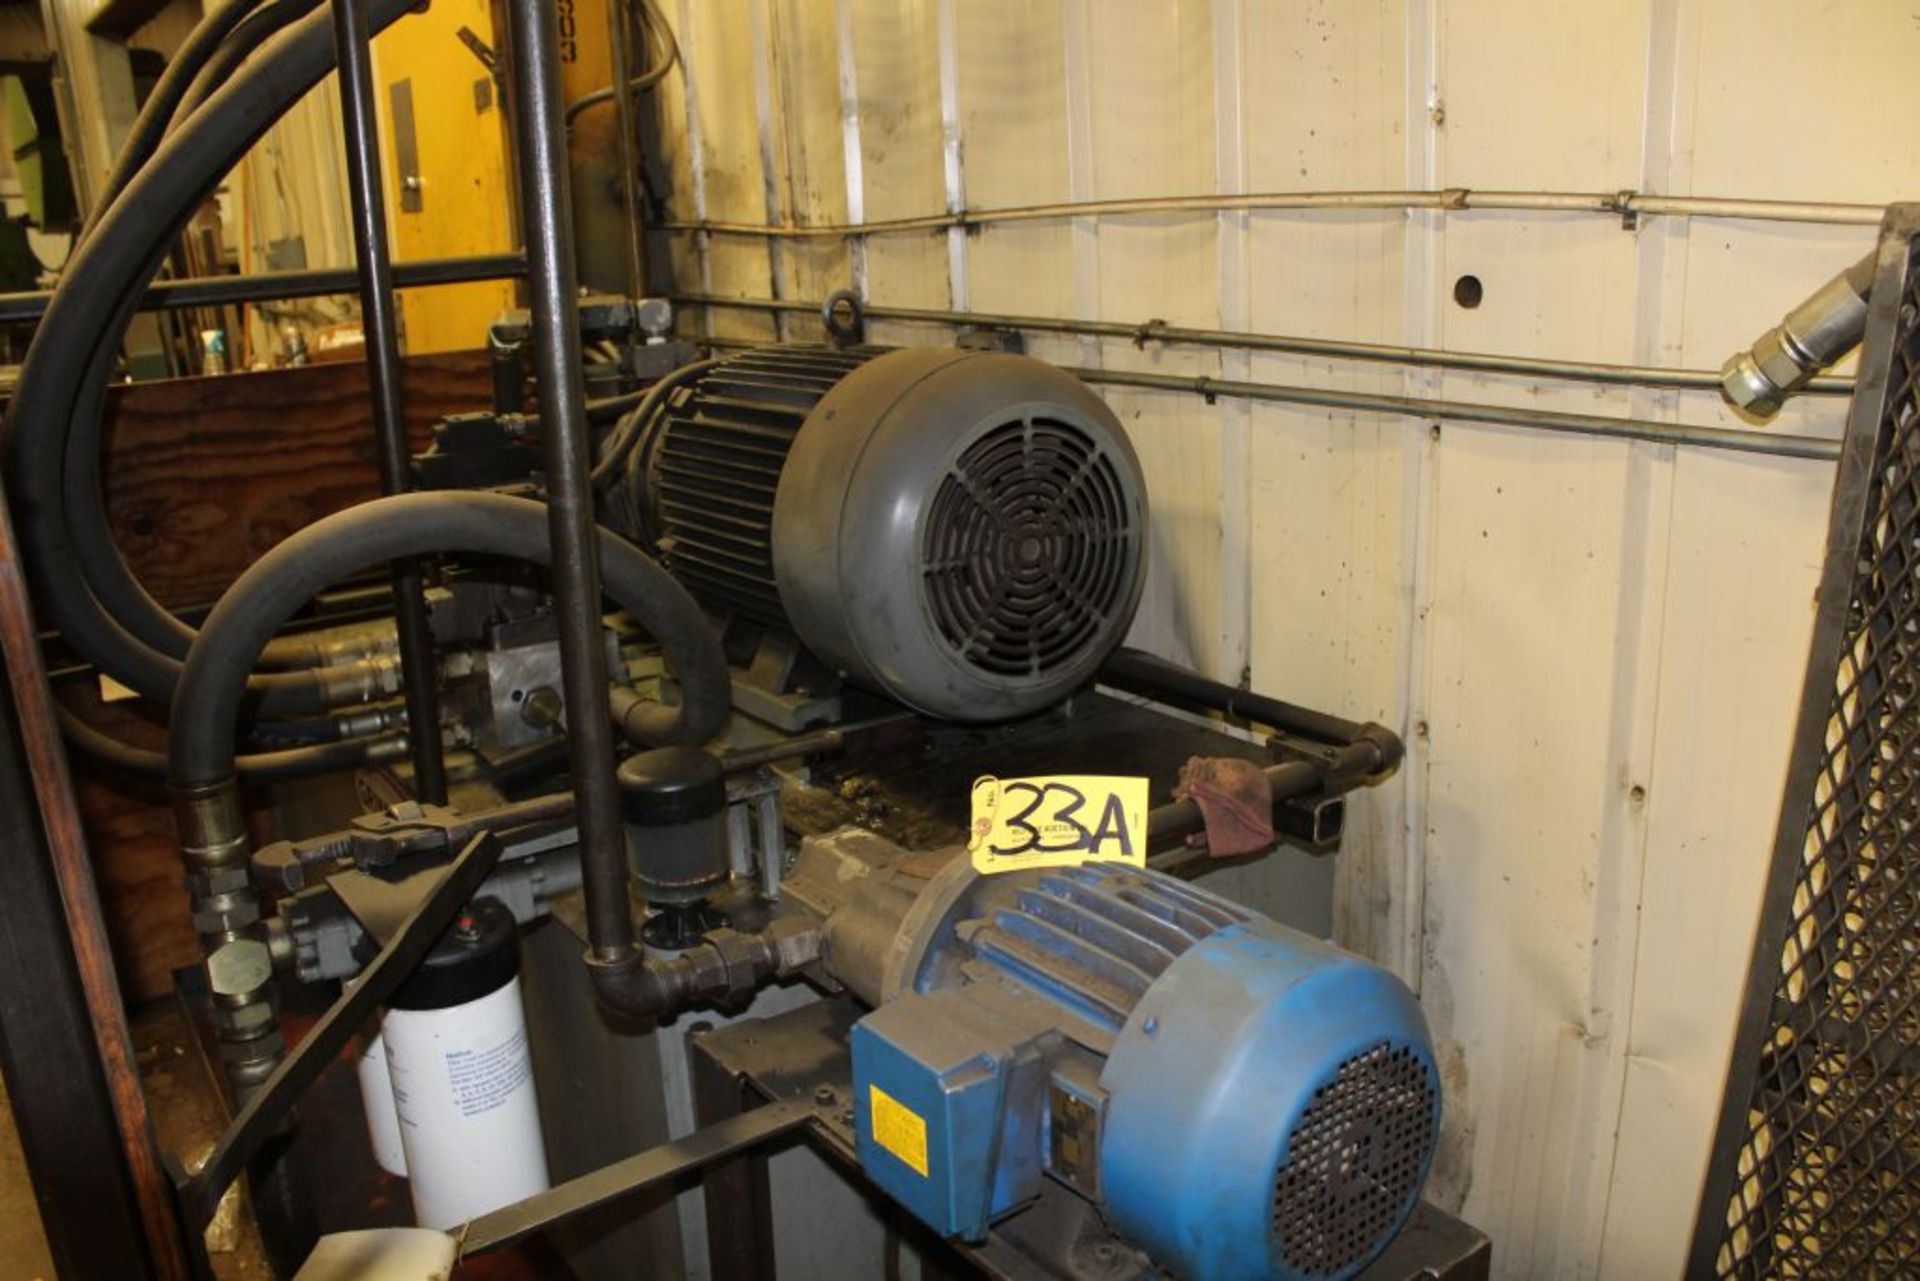 "Lot 033 - Elms hydraulic press, 600 T., 75 hp, 44 x 66"" bed, 6' pit, safety curtain."